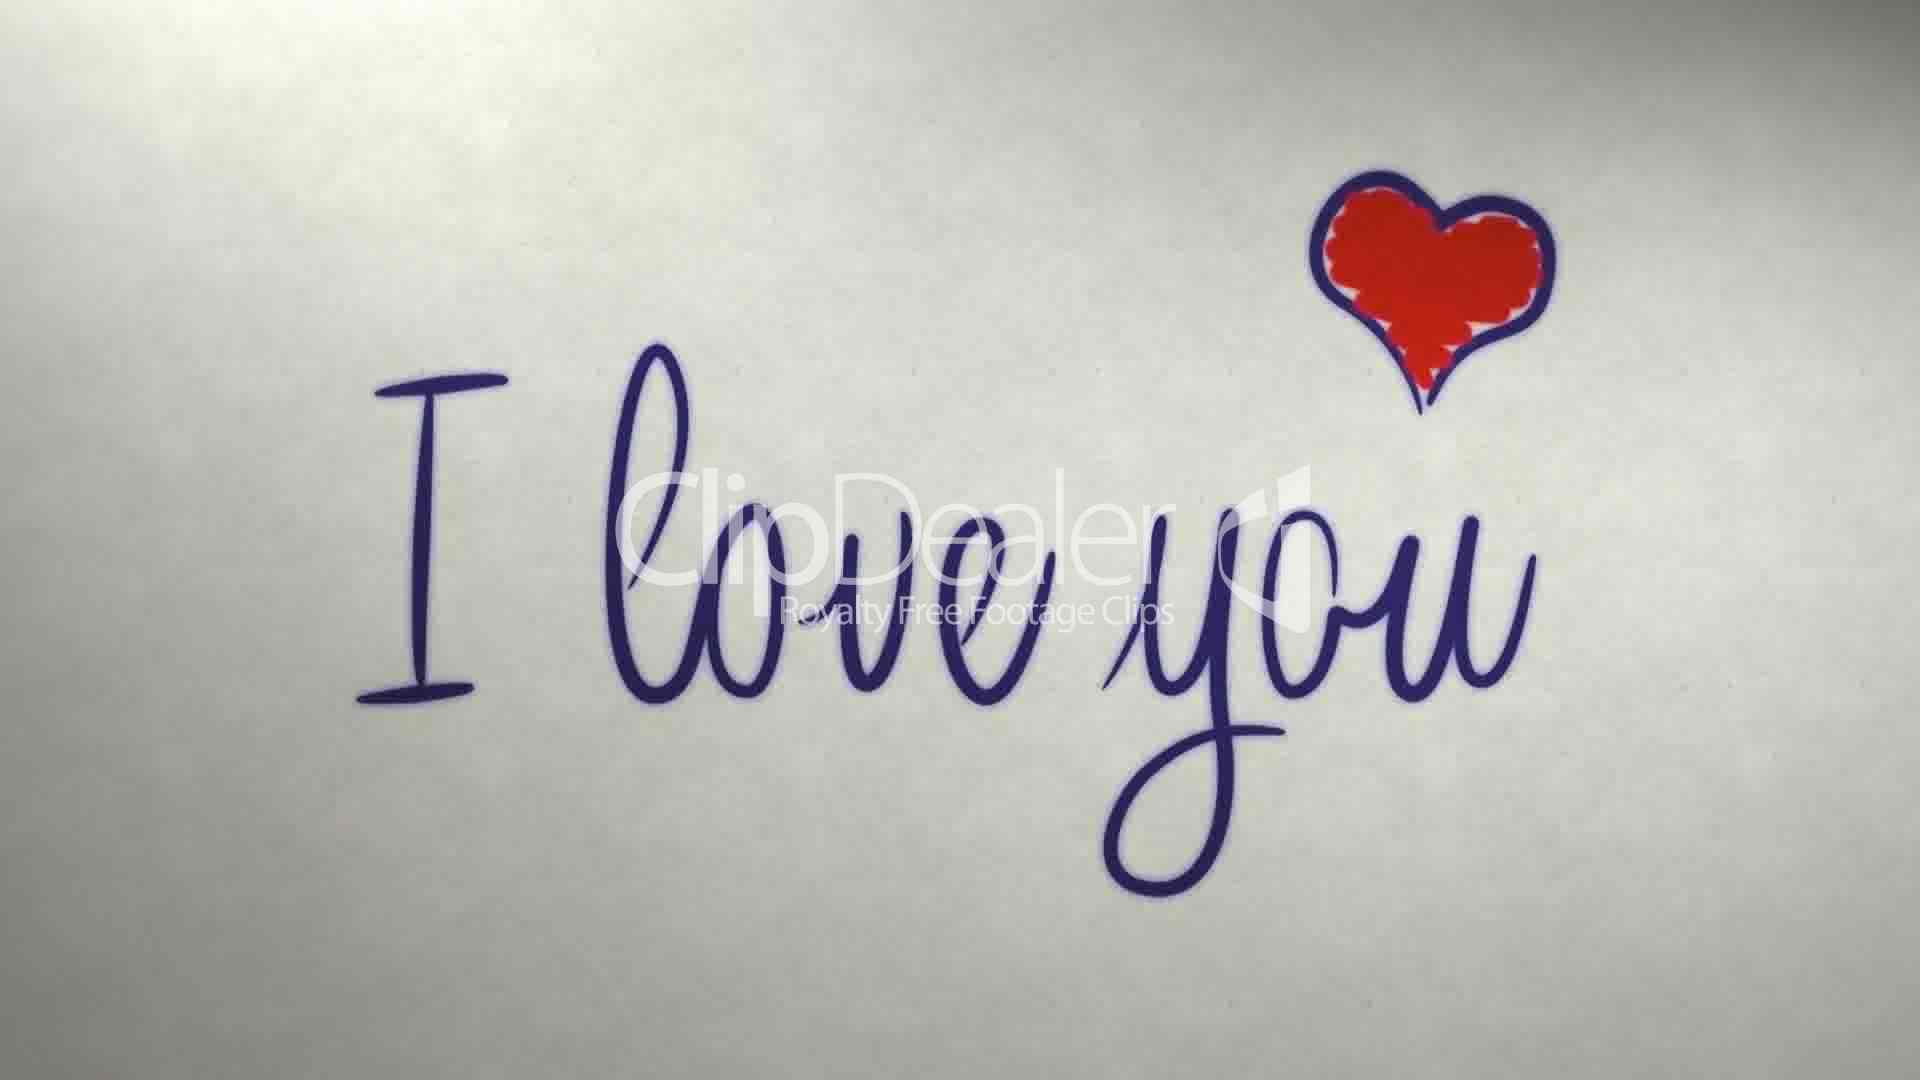 I love you message on newspaper: Royalty-free video and ...